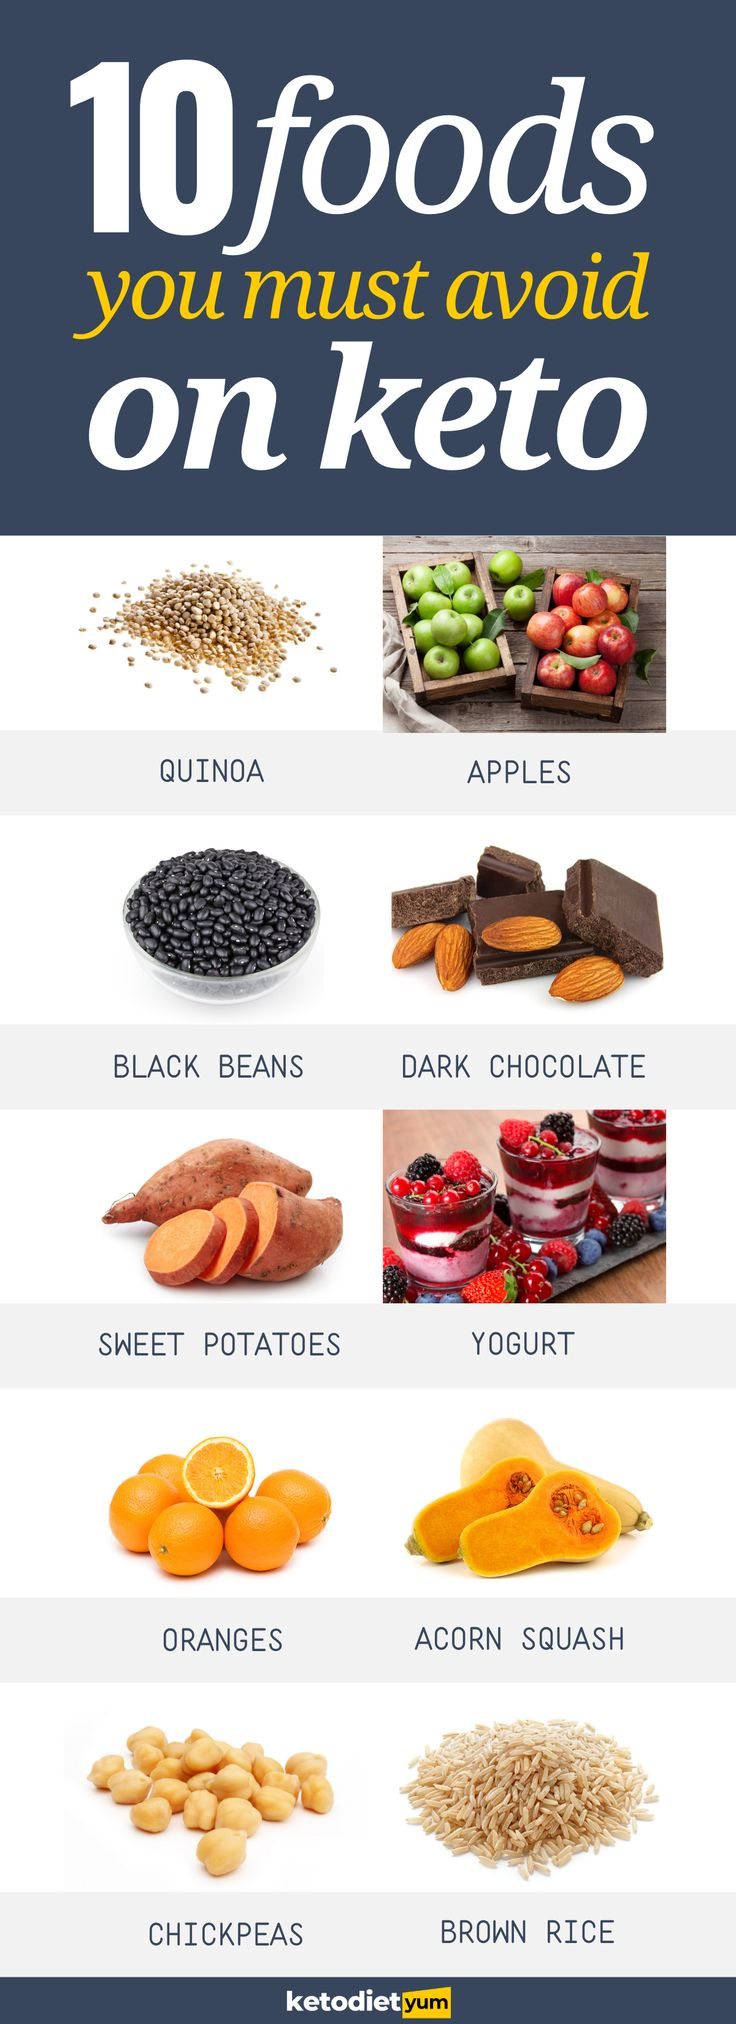 10 Healthy Foods To Avoid on the Keto Diet in 2020 10